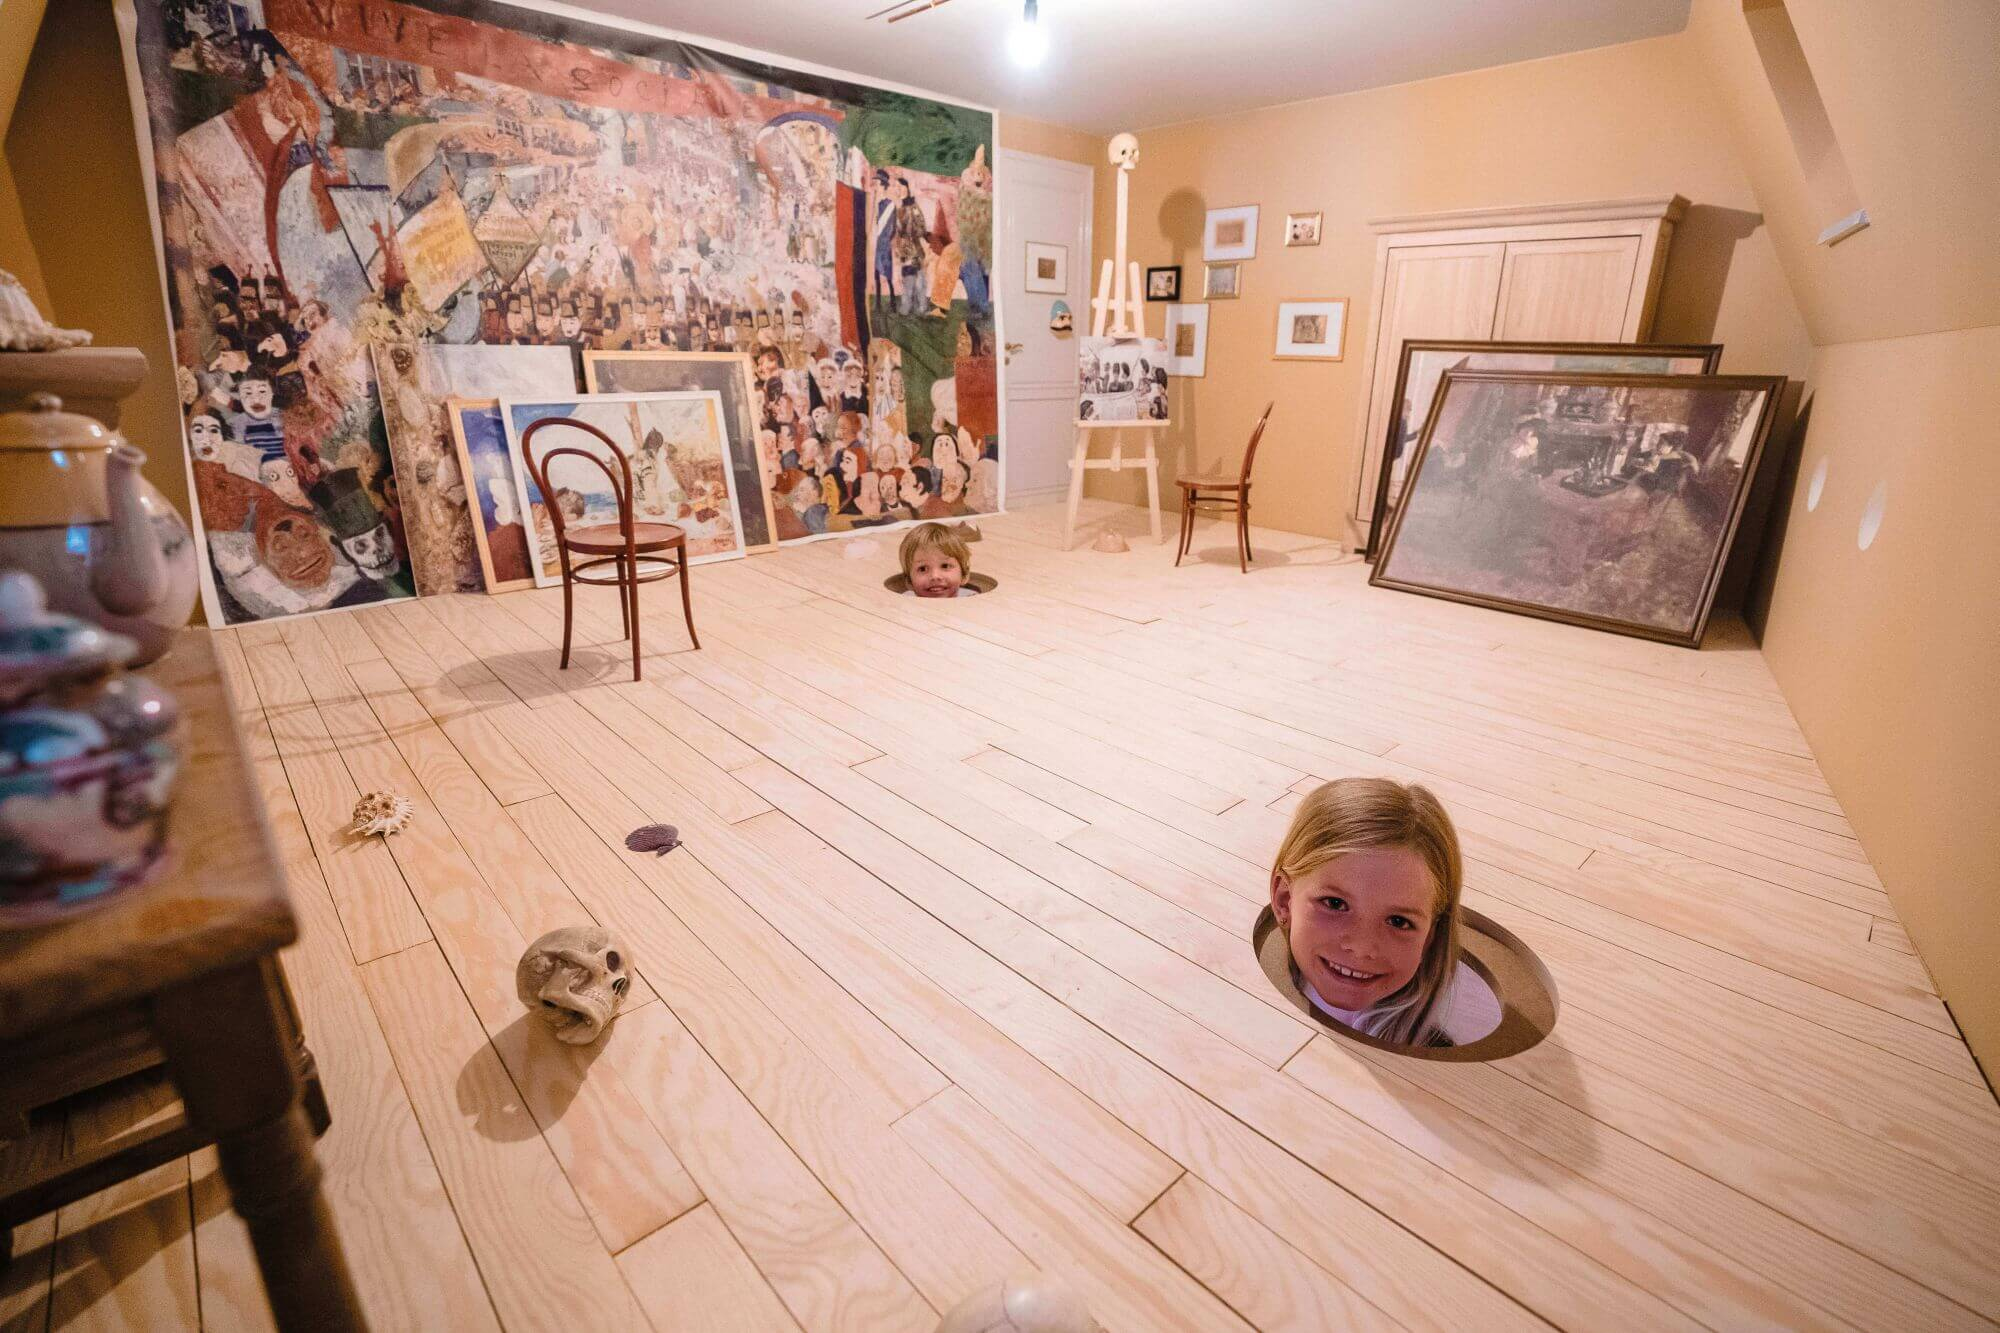 Unique museum with natural wood floors puts you in the mind of a world famous artist.